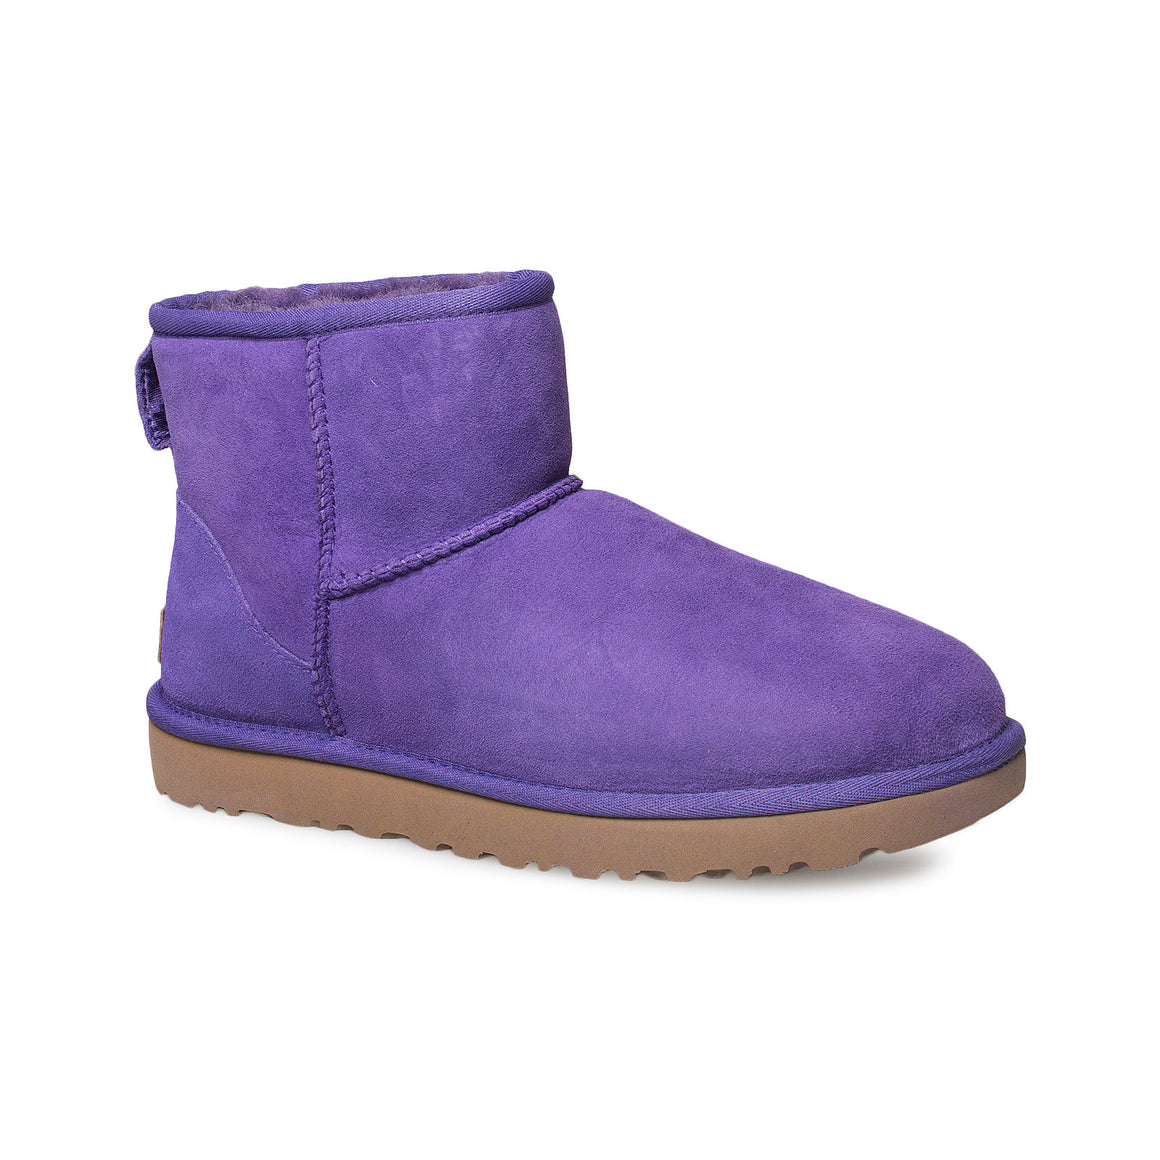 UGG Classic Mini II Violet Bloom Boots - Women's